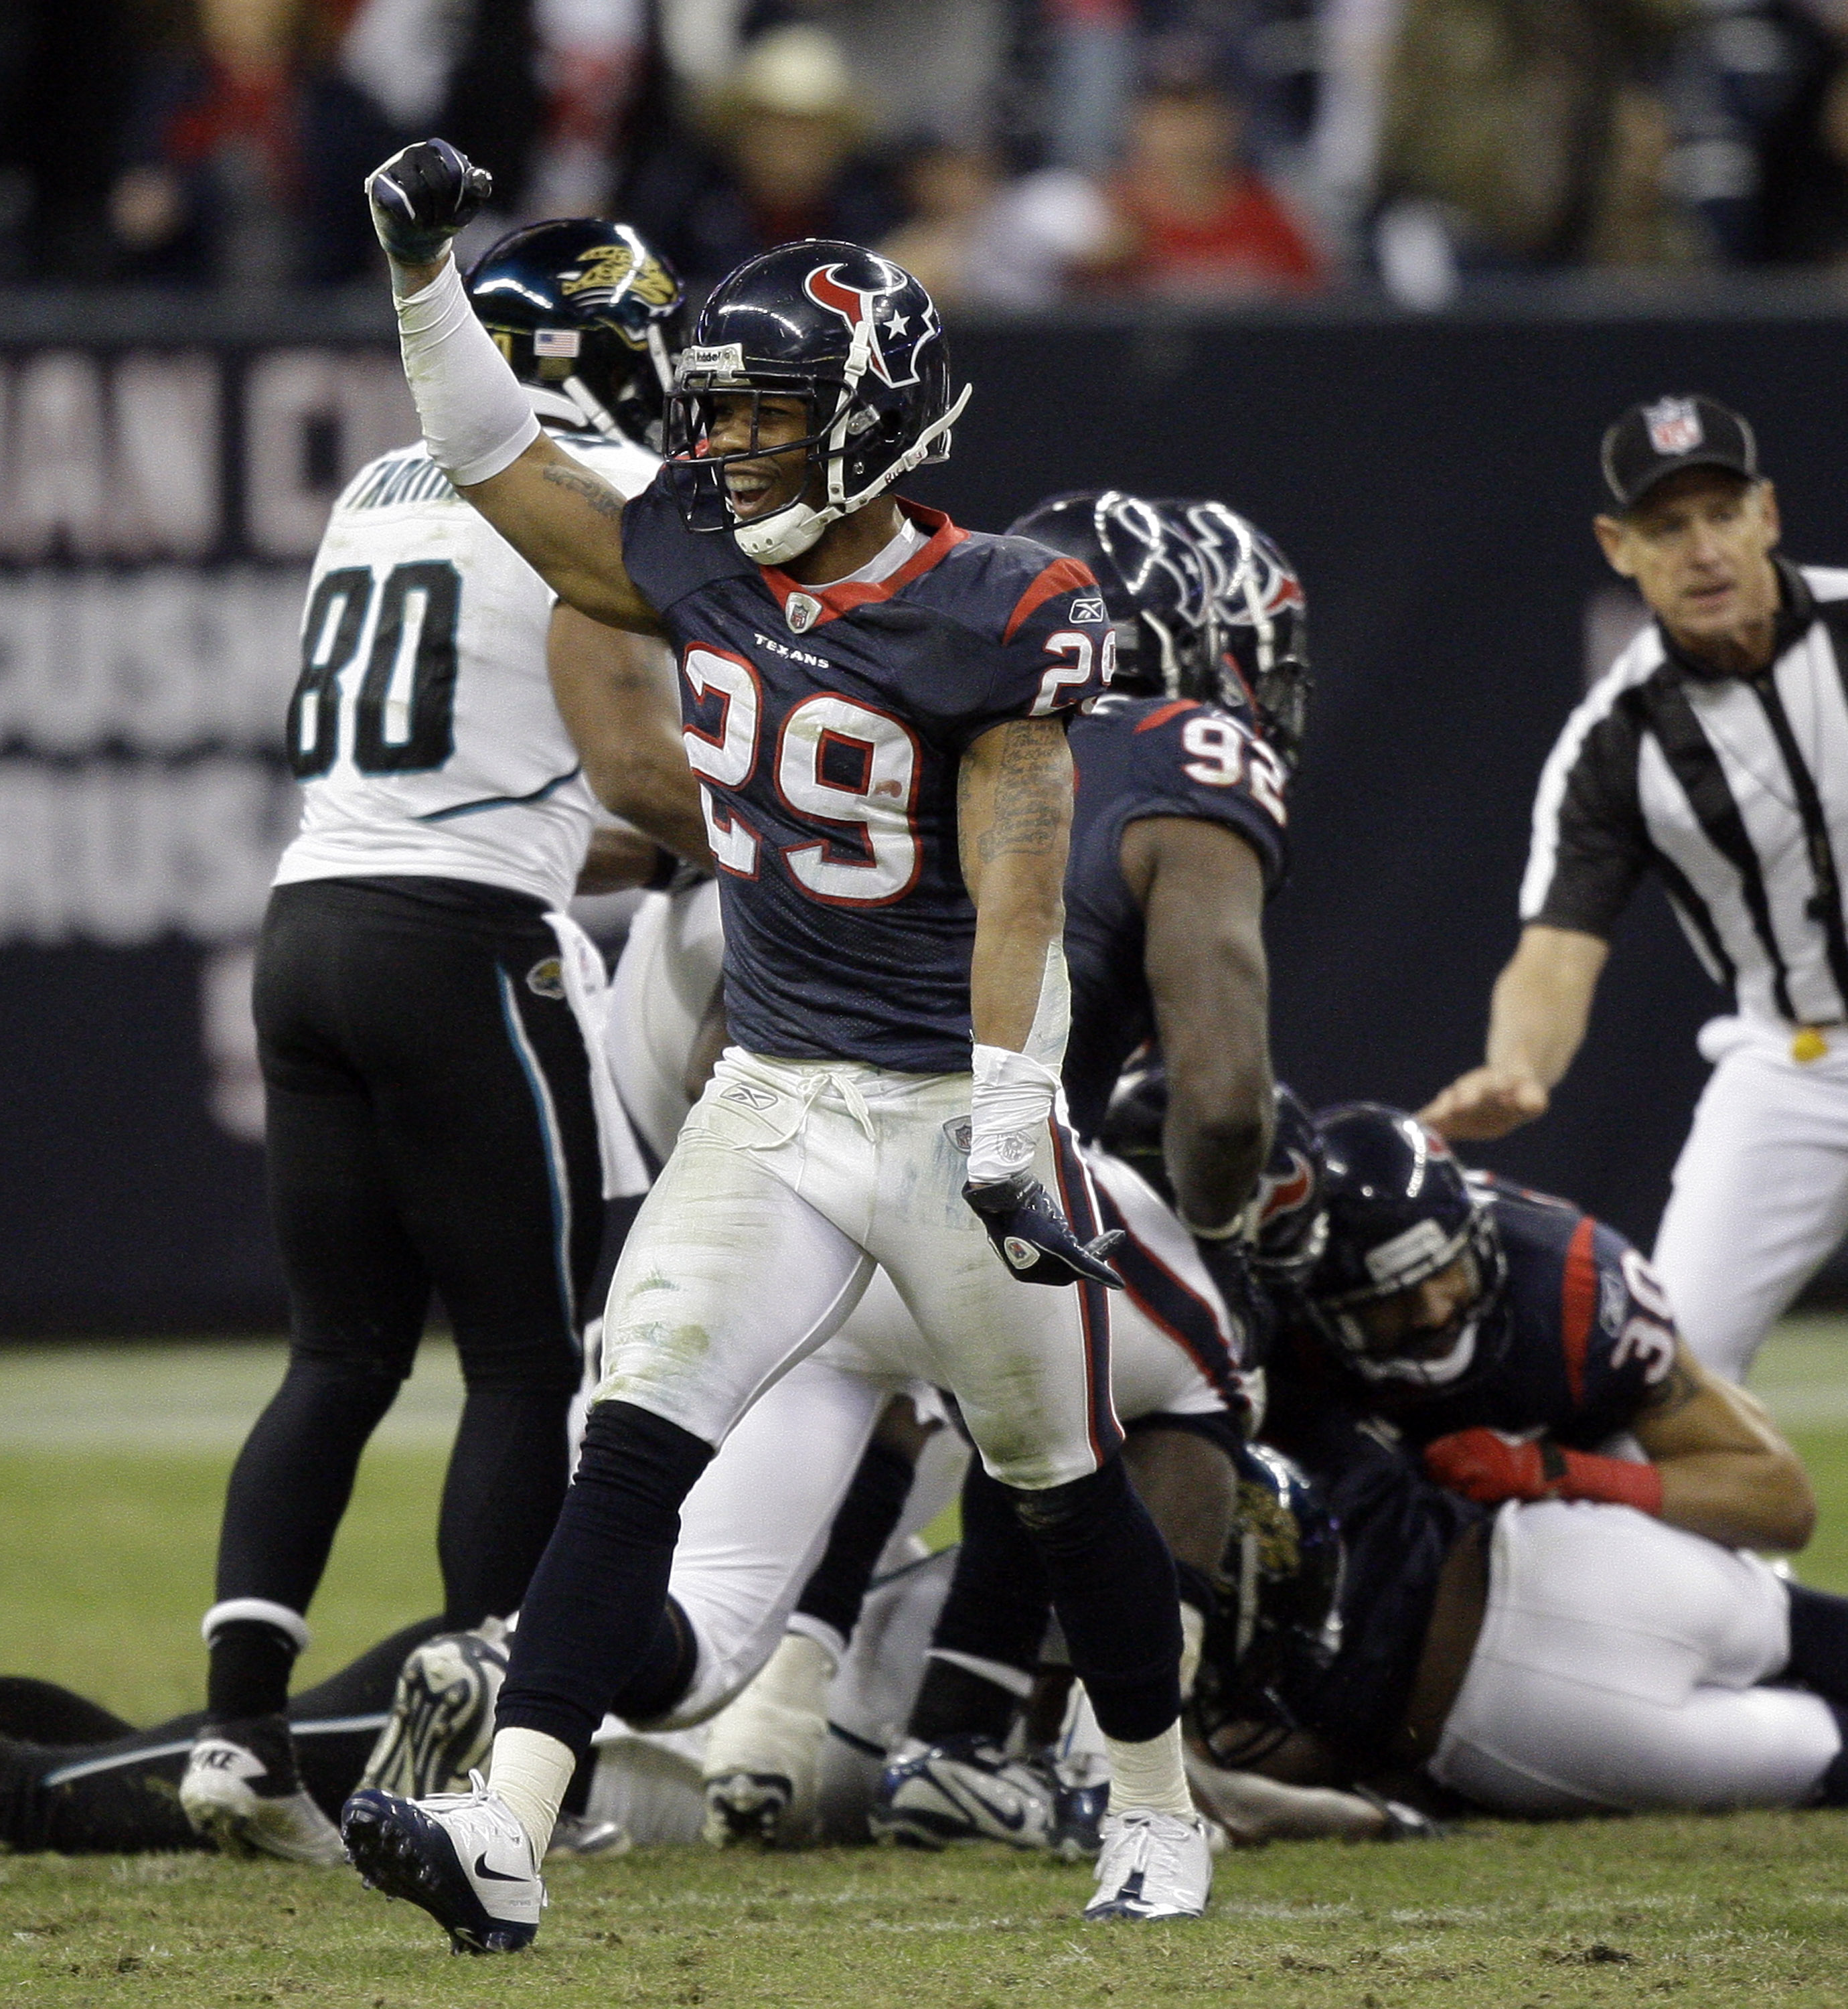 HOUSTON - JANUARY 02:  Glover Quin #29 of the Houston Texans celebrates after recovering a fumble late in the fourth quarter against the Jacksonville Jaguars at Reliant Stadium on January 2, 2011 in Houston, Texas.  (Photo by Bob Levey/Getty Images)